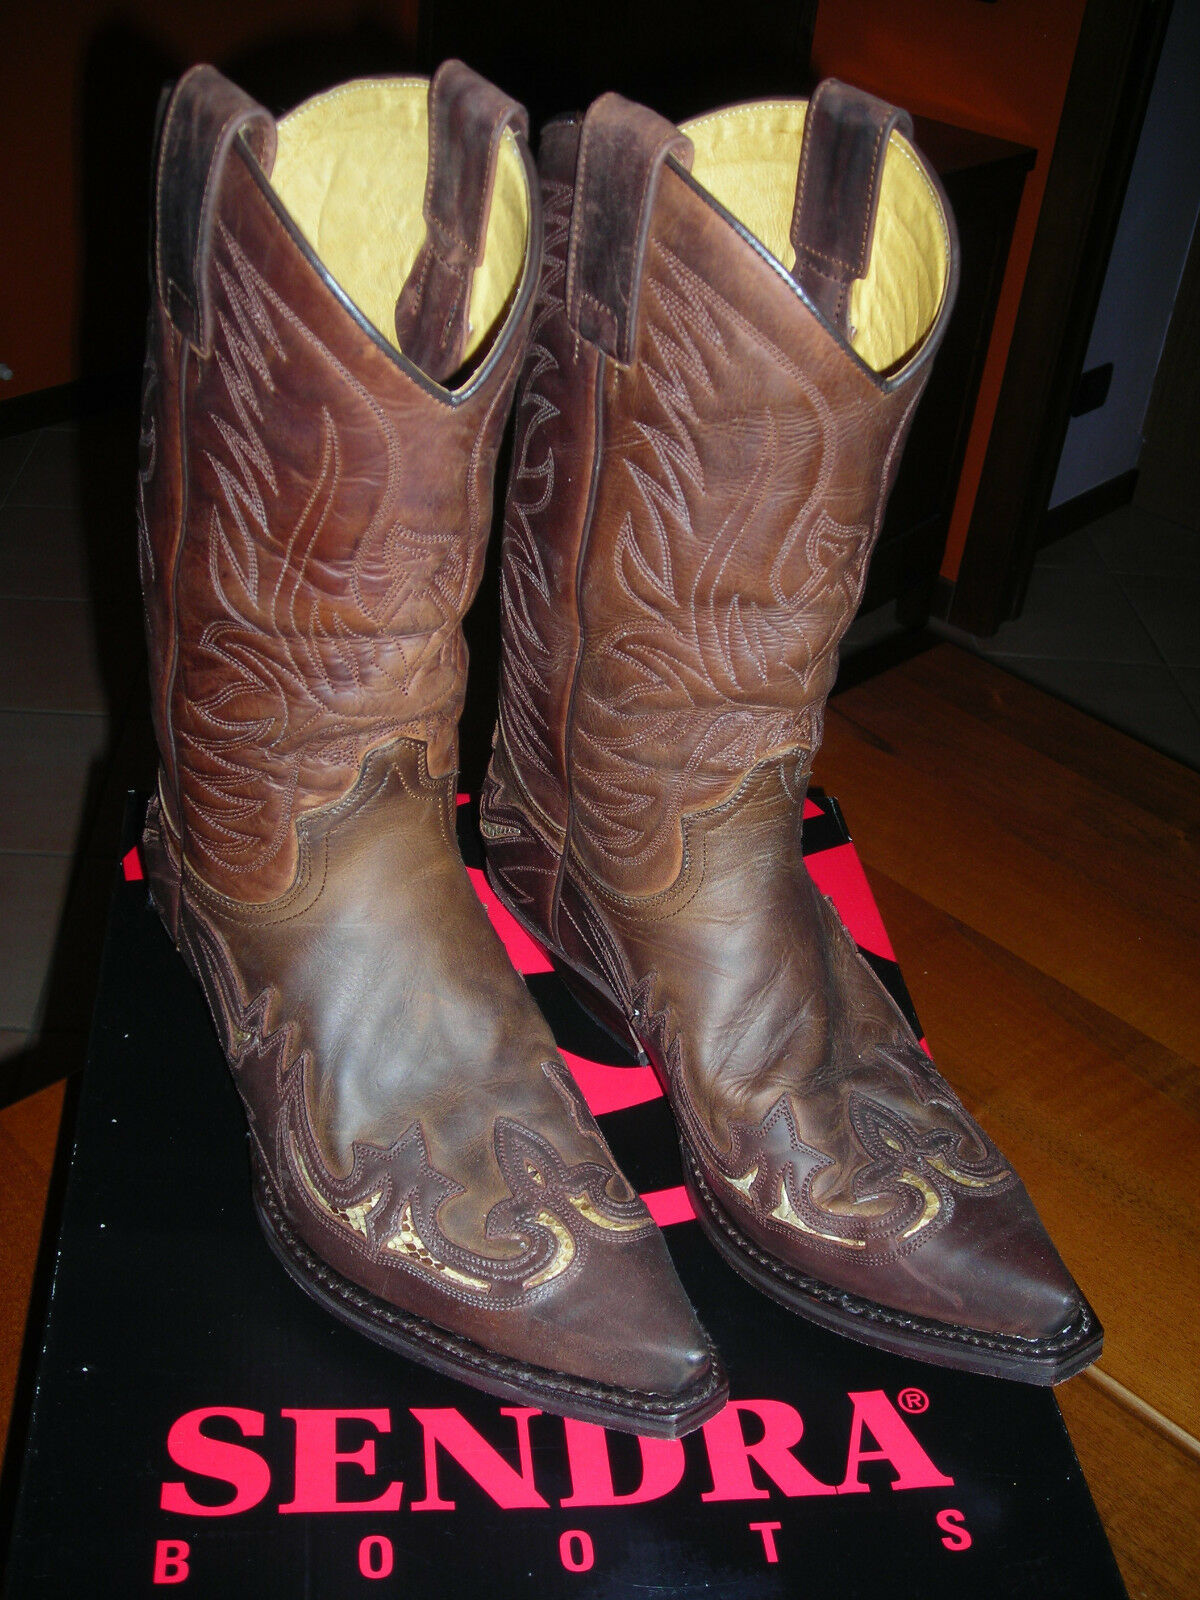 Sendra Boots Stivali,western,country,biker,harley davidson - US 8.5